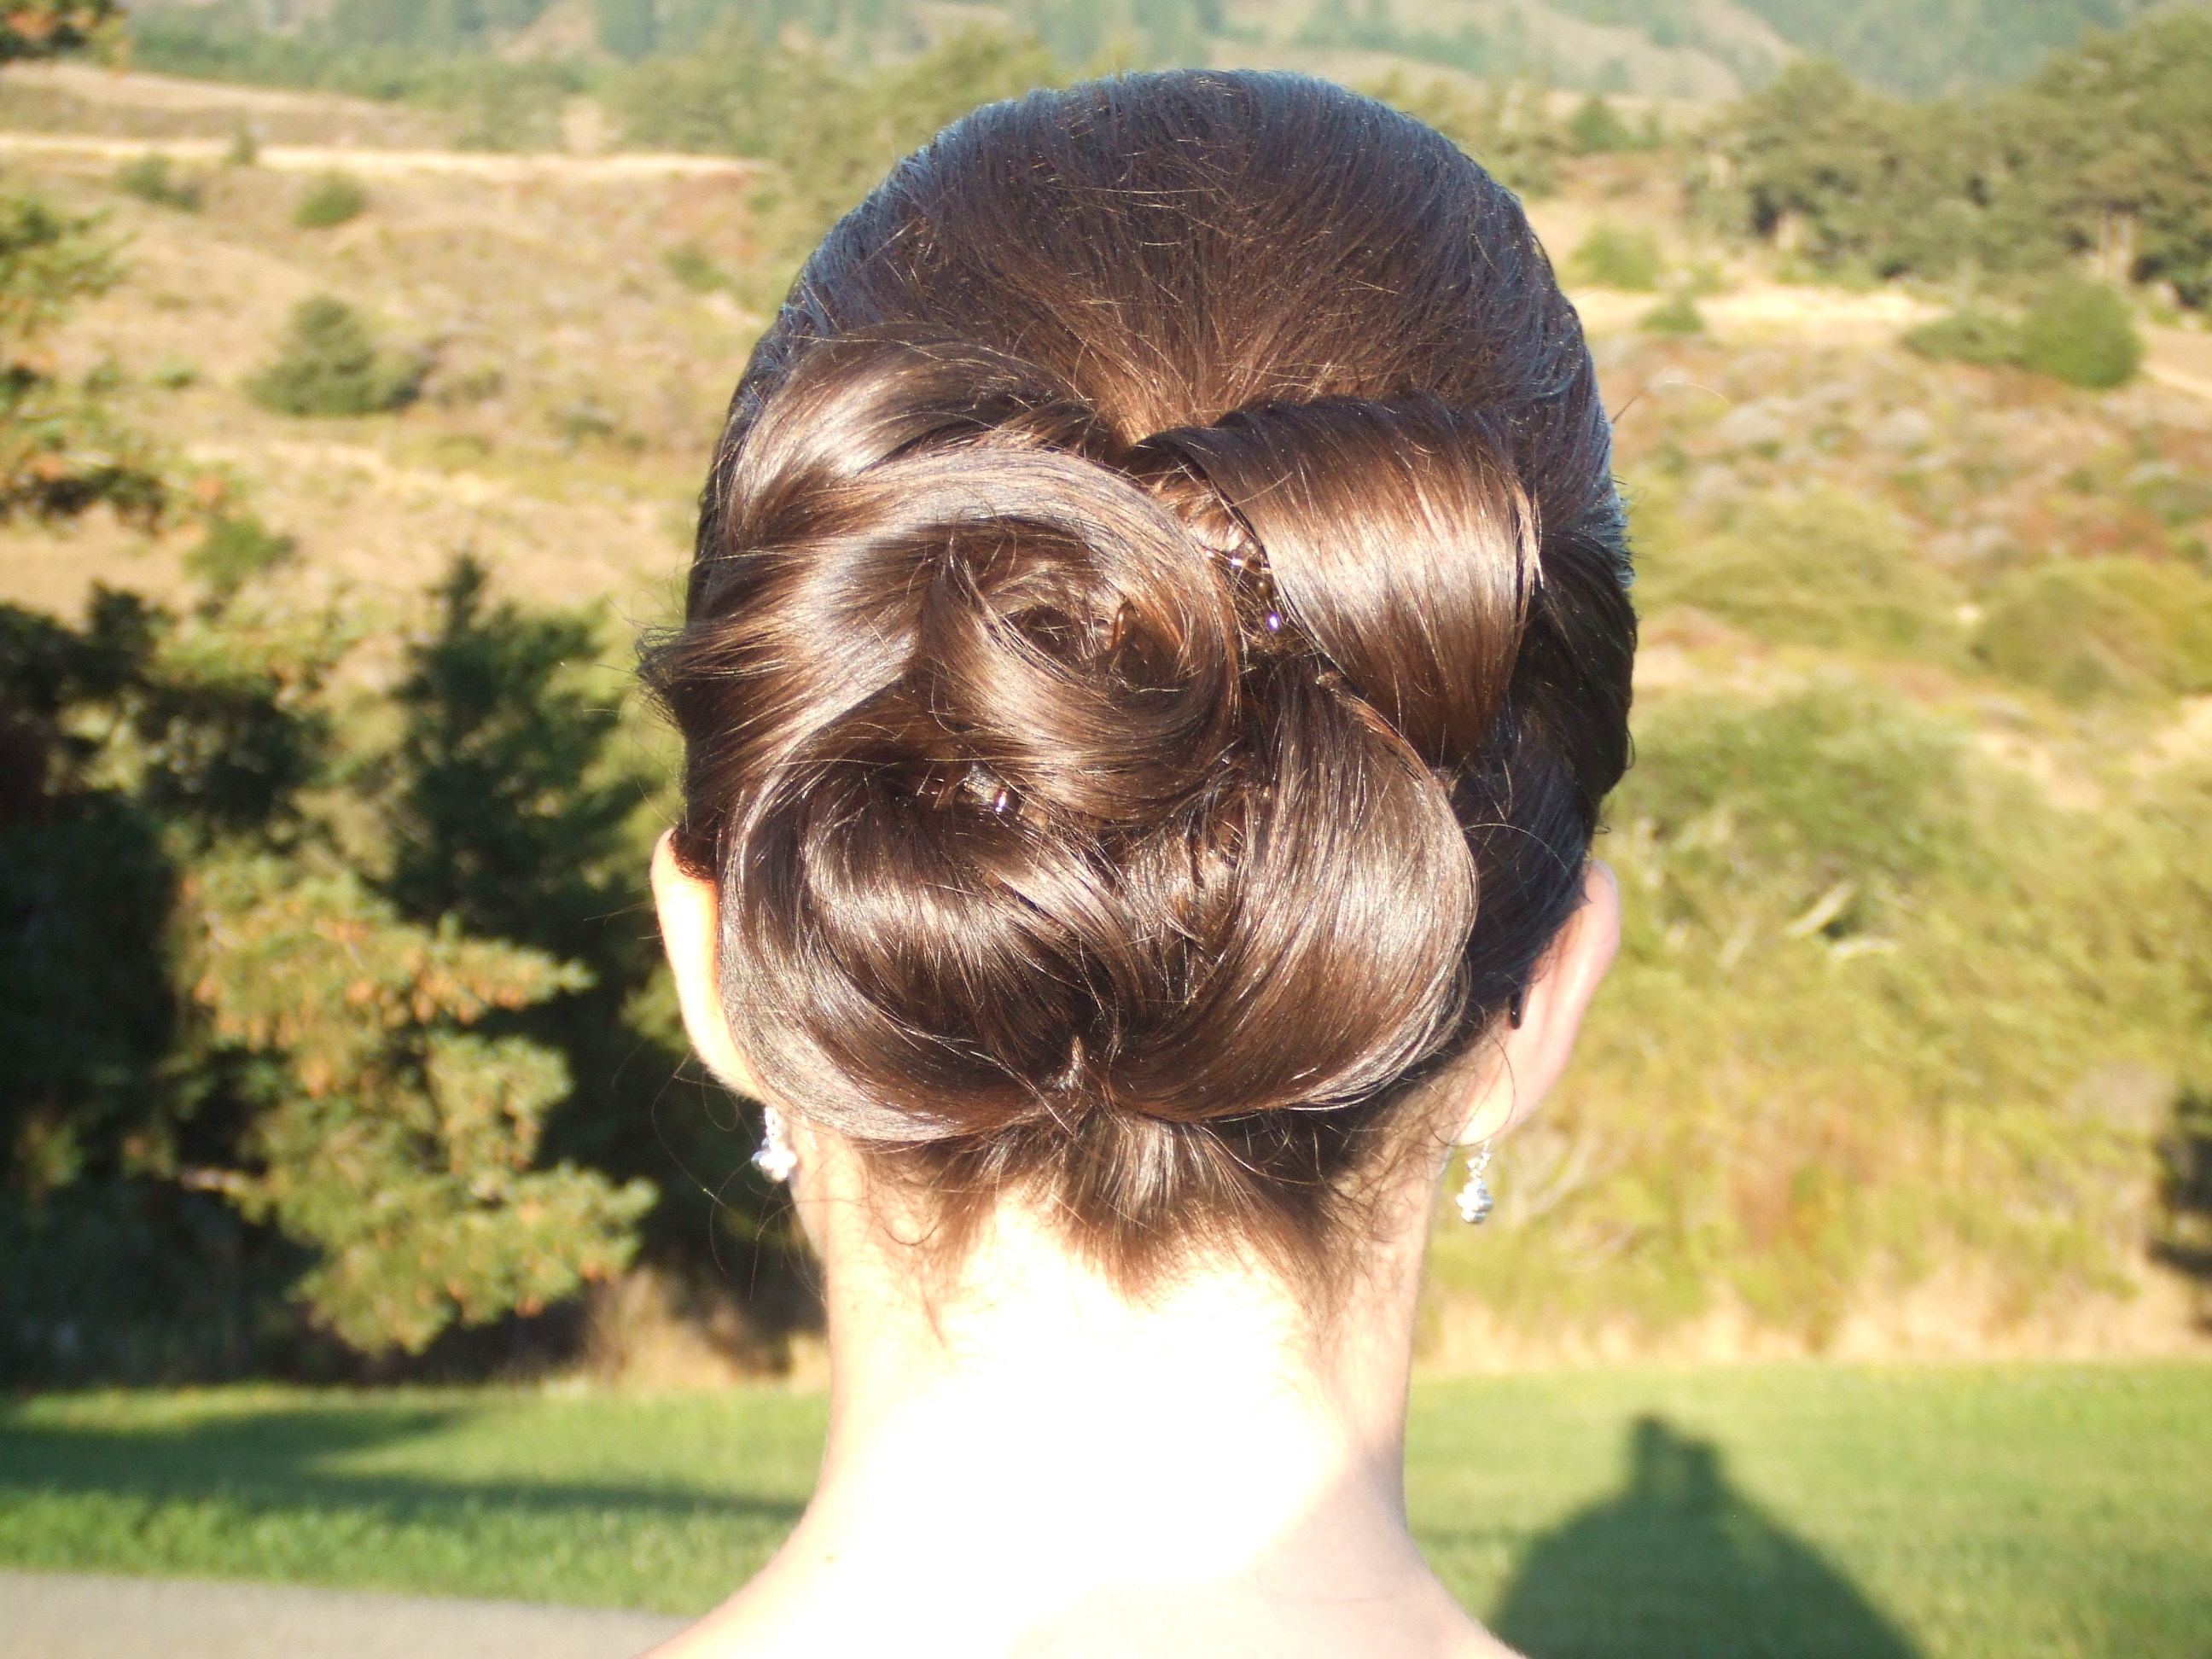 Beauty, Chignon